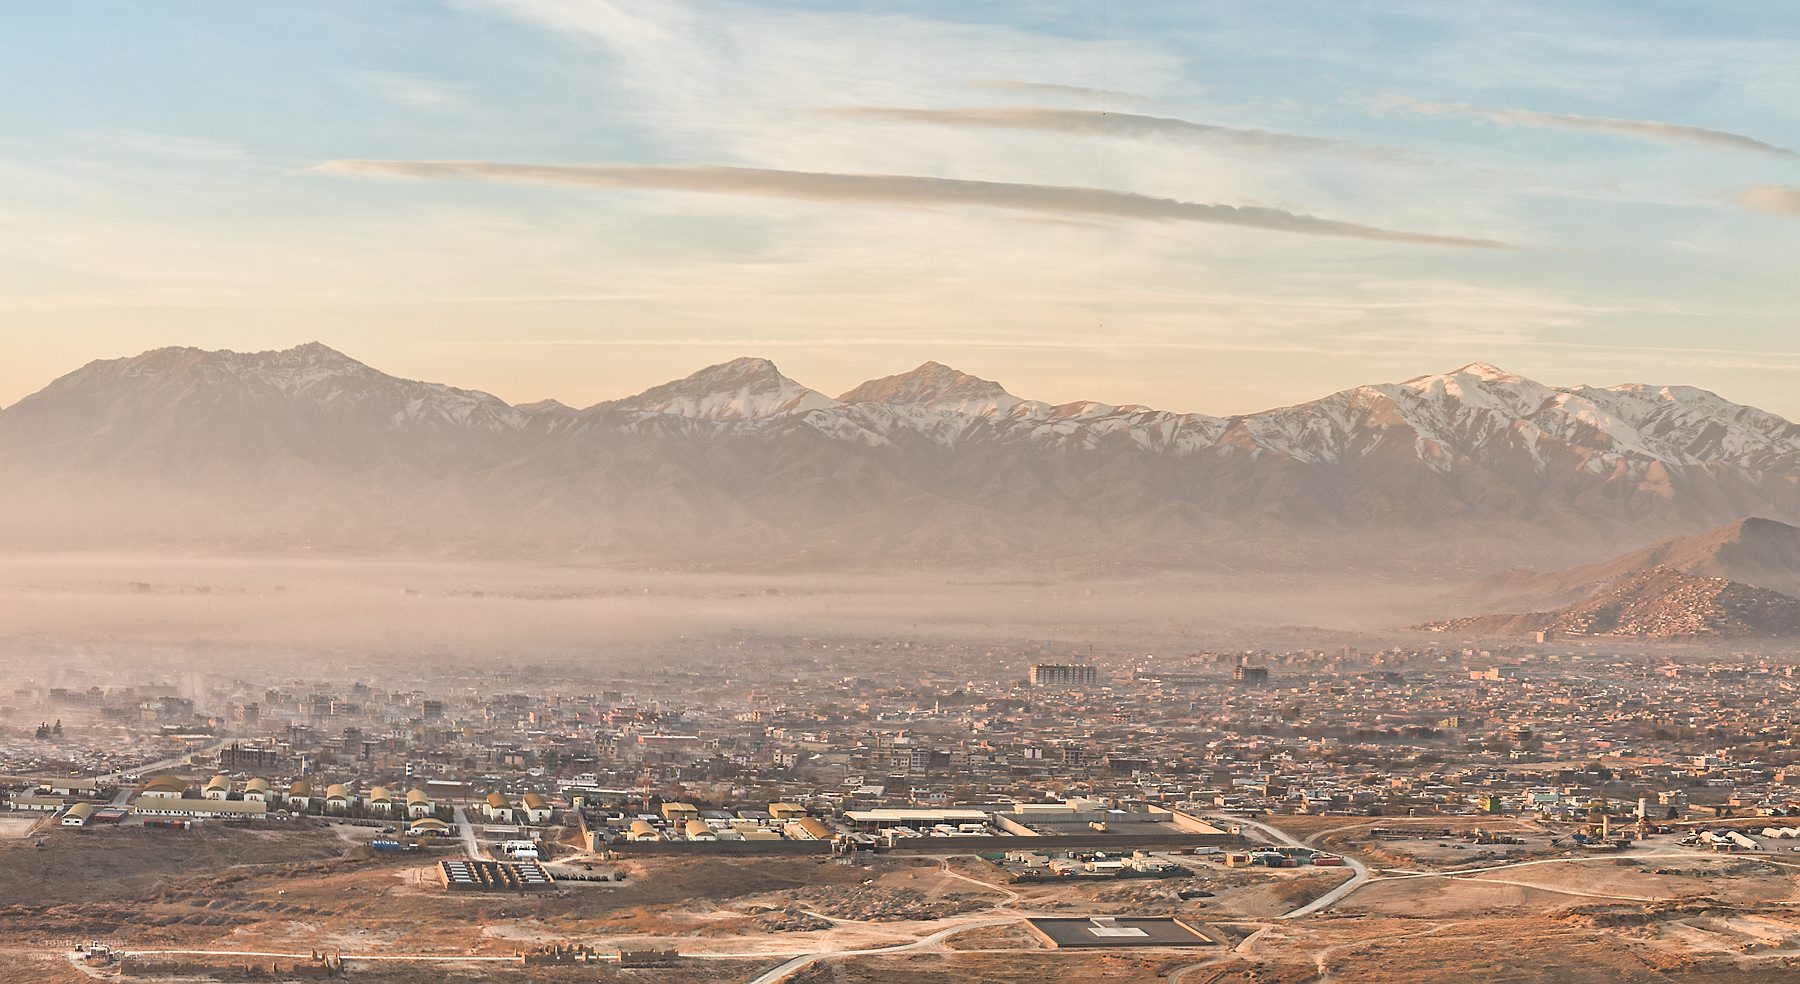 A view over Camp Qarga and the Afghan National Army Officer Academy in Kabul, Afghanistan at sunrise.